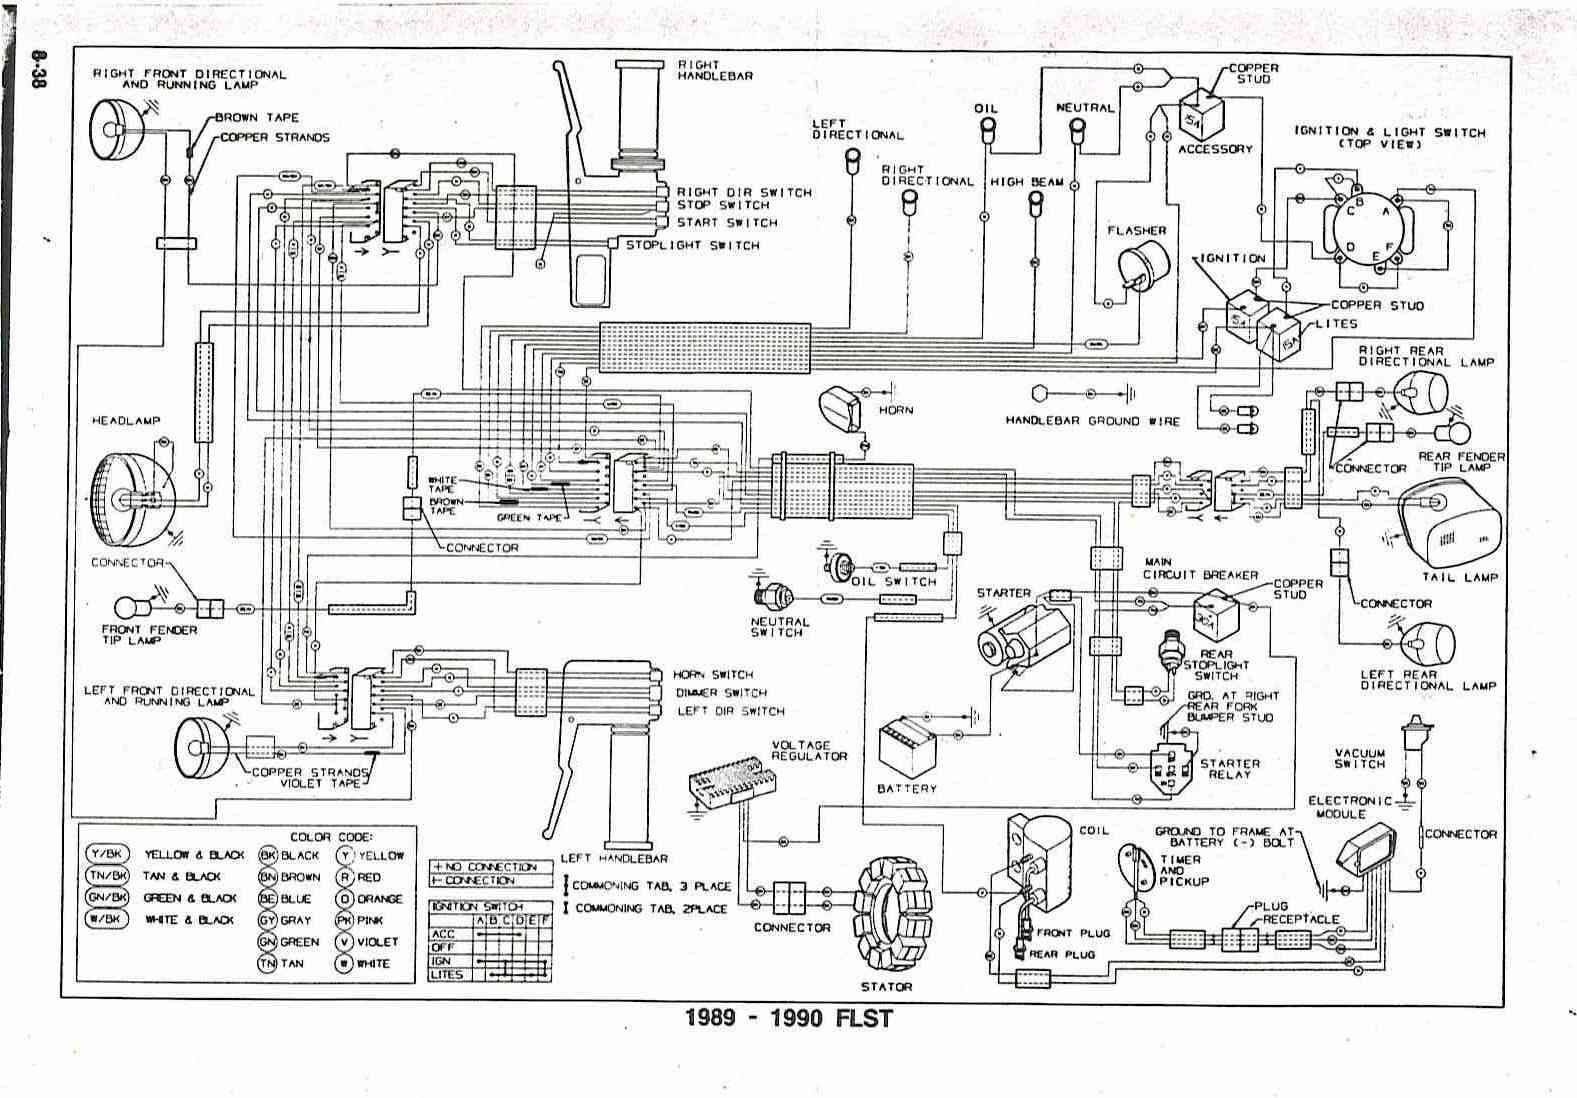 Simple Harley Wiring Harness Diagram Html also Lift Station Control Panel Schematic furthermore Harley Breaker Box Diagram furthermore Razor Mini Chopper Wiring Diagram Basic additionally 1987 Ez Go Golf Cart Wiring Diagram. on mini harley chopper wiring